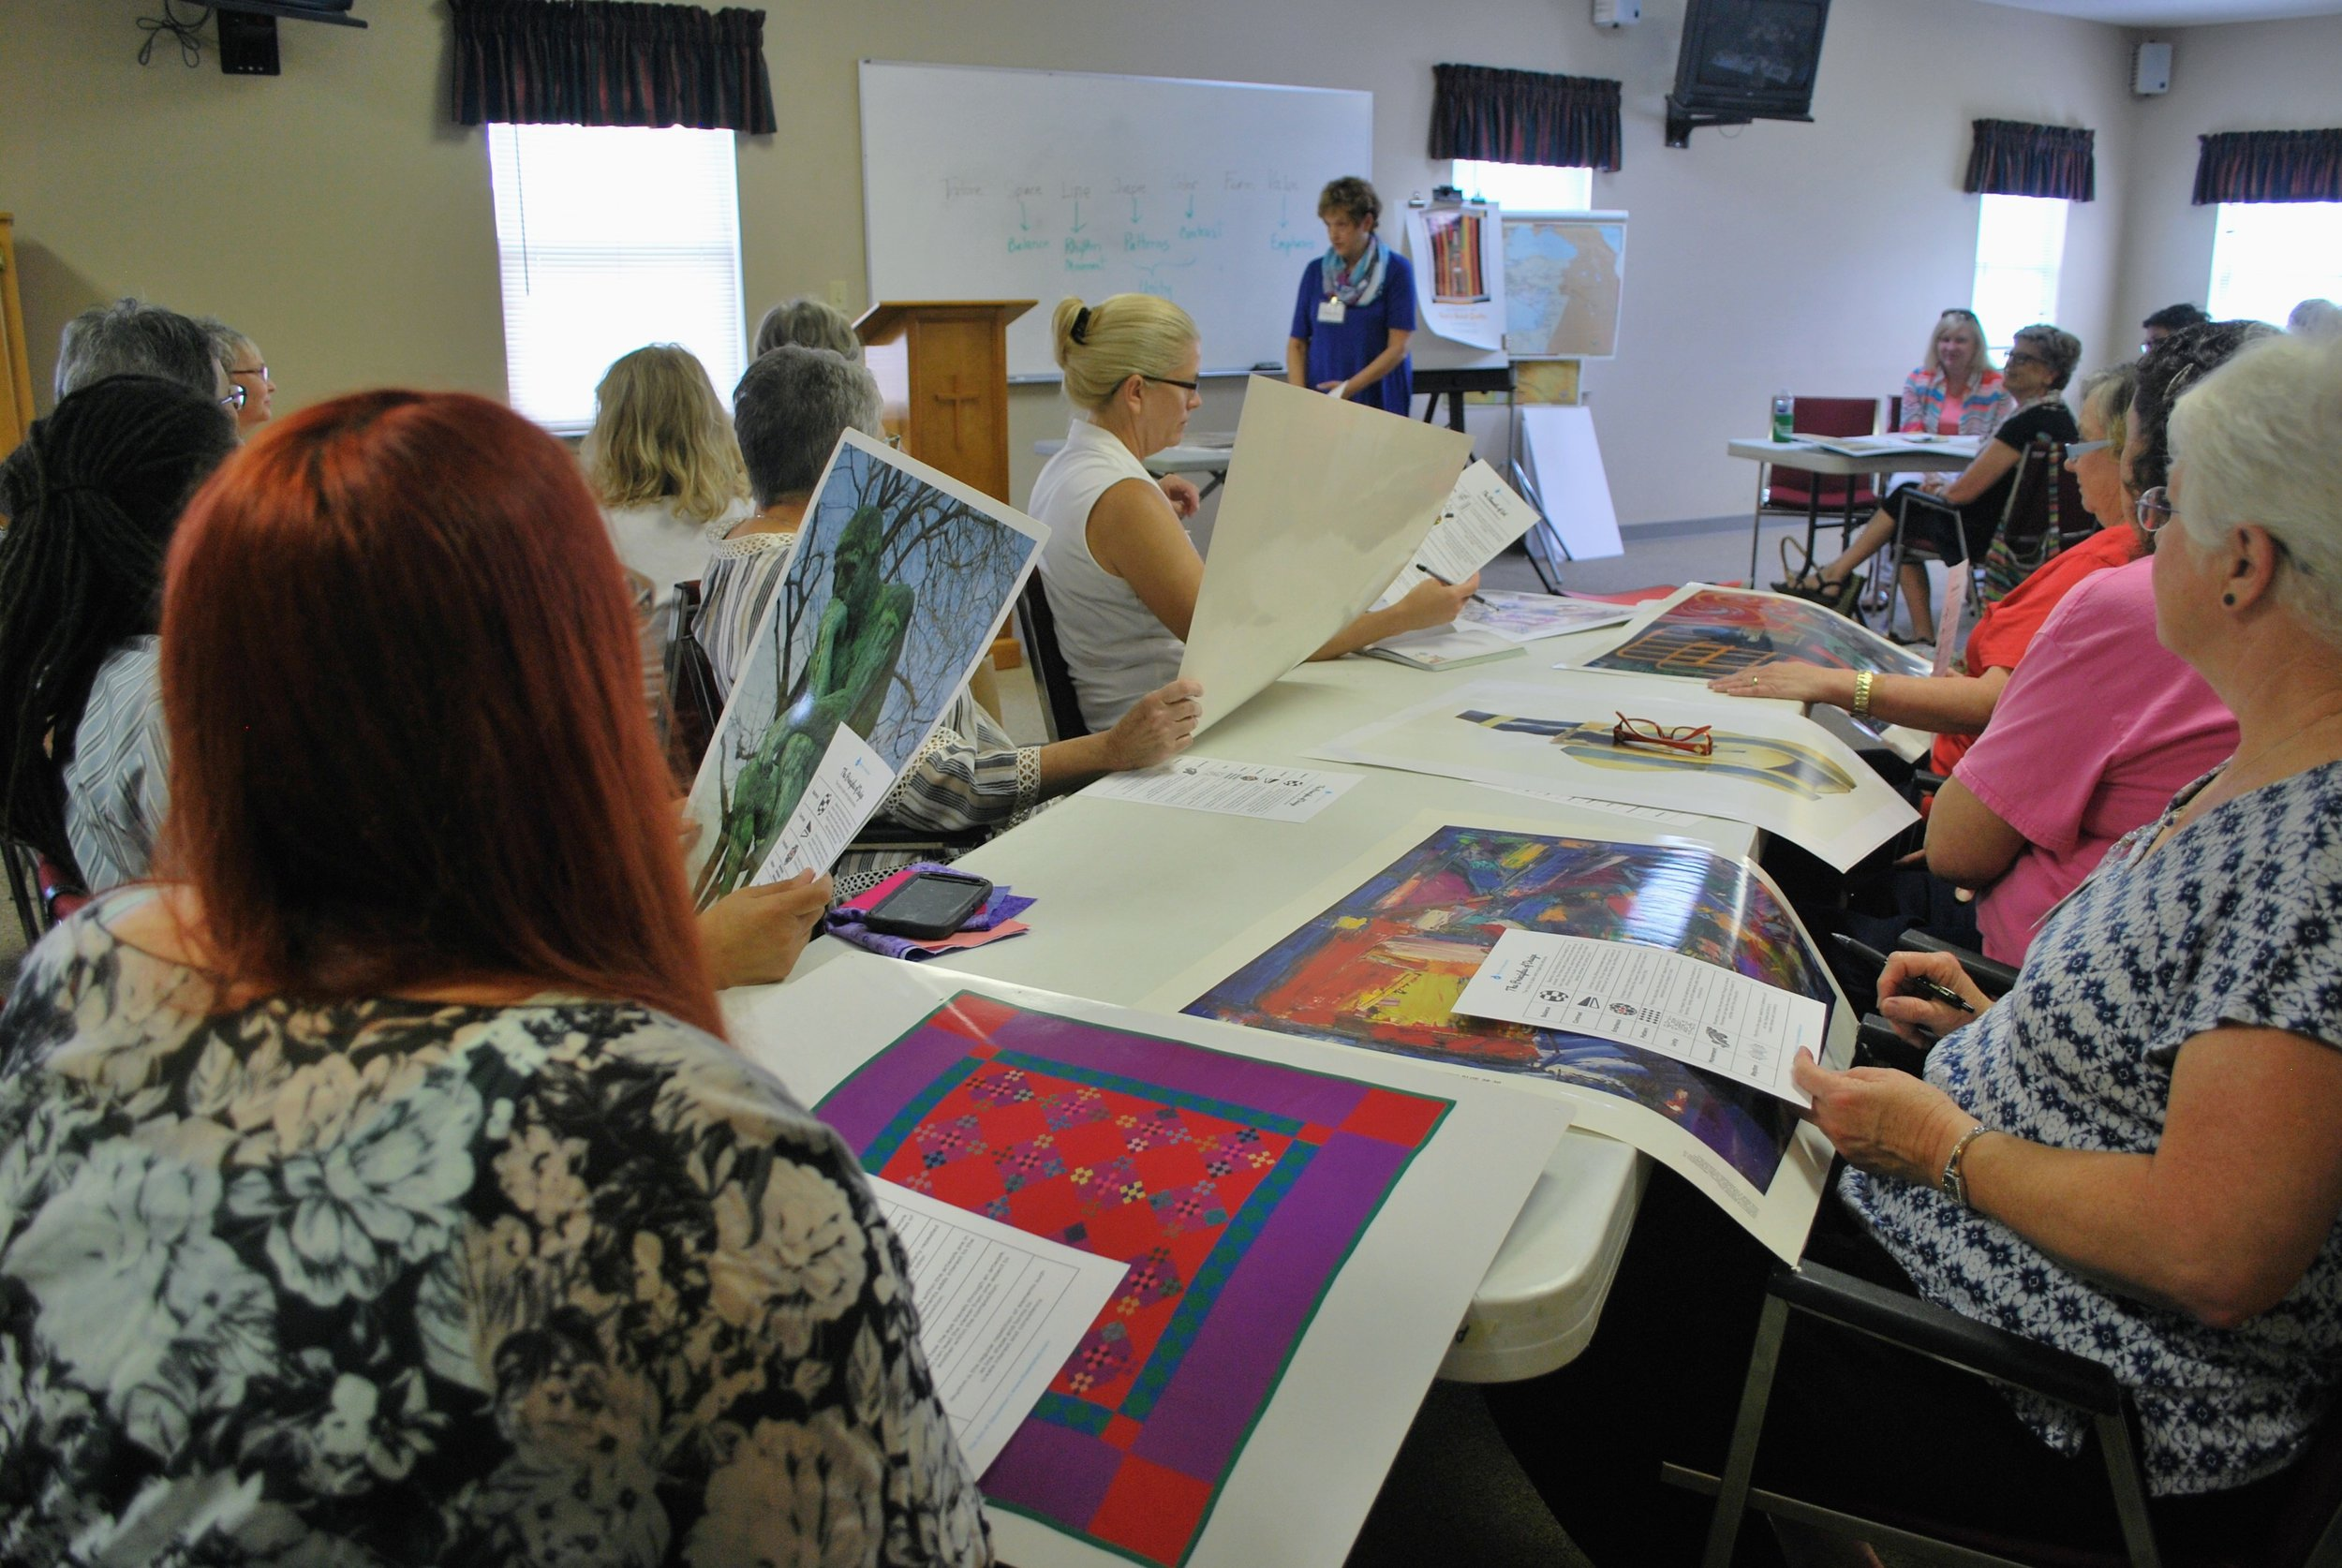 ChattMQG members identify elements of art and principles of design used in well-known artworks